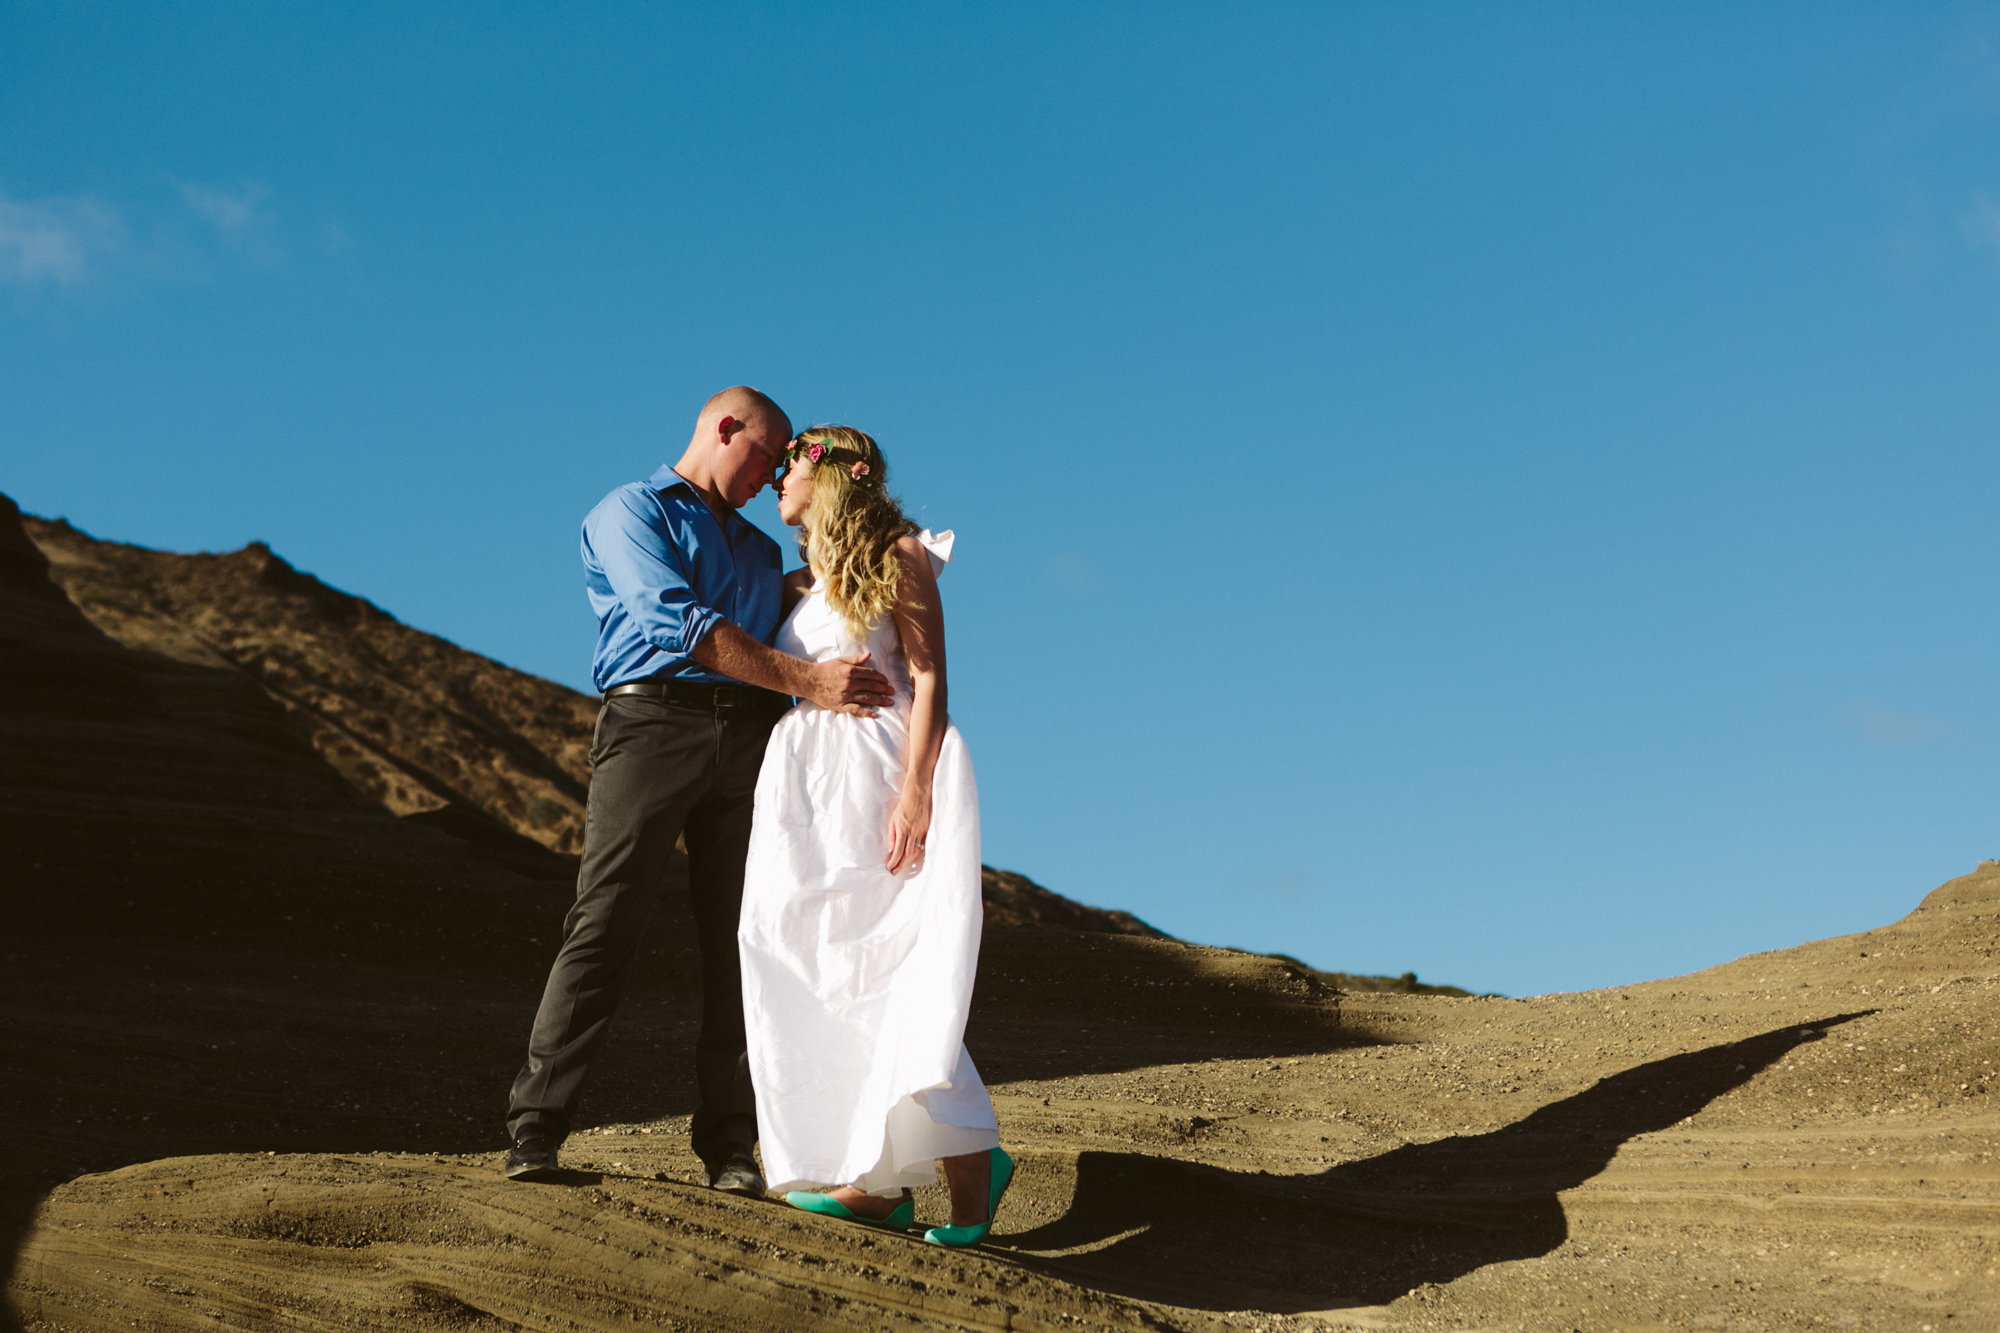 Oahu Wedding Photographer- Hawaii Destination Wedding- kahauloa cove- Grace and Jaden Hurtienne Photography (12).jpg